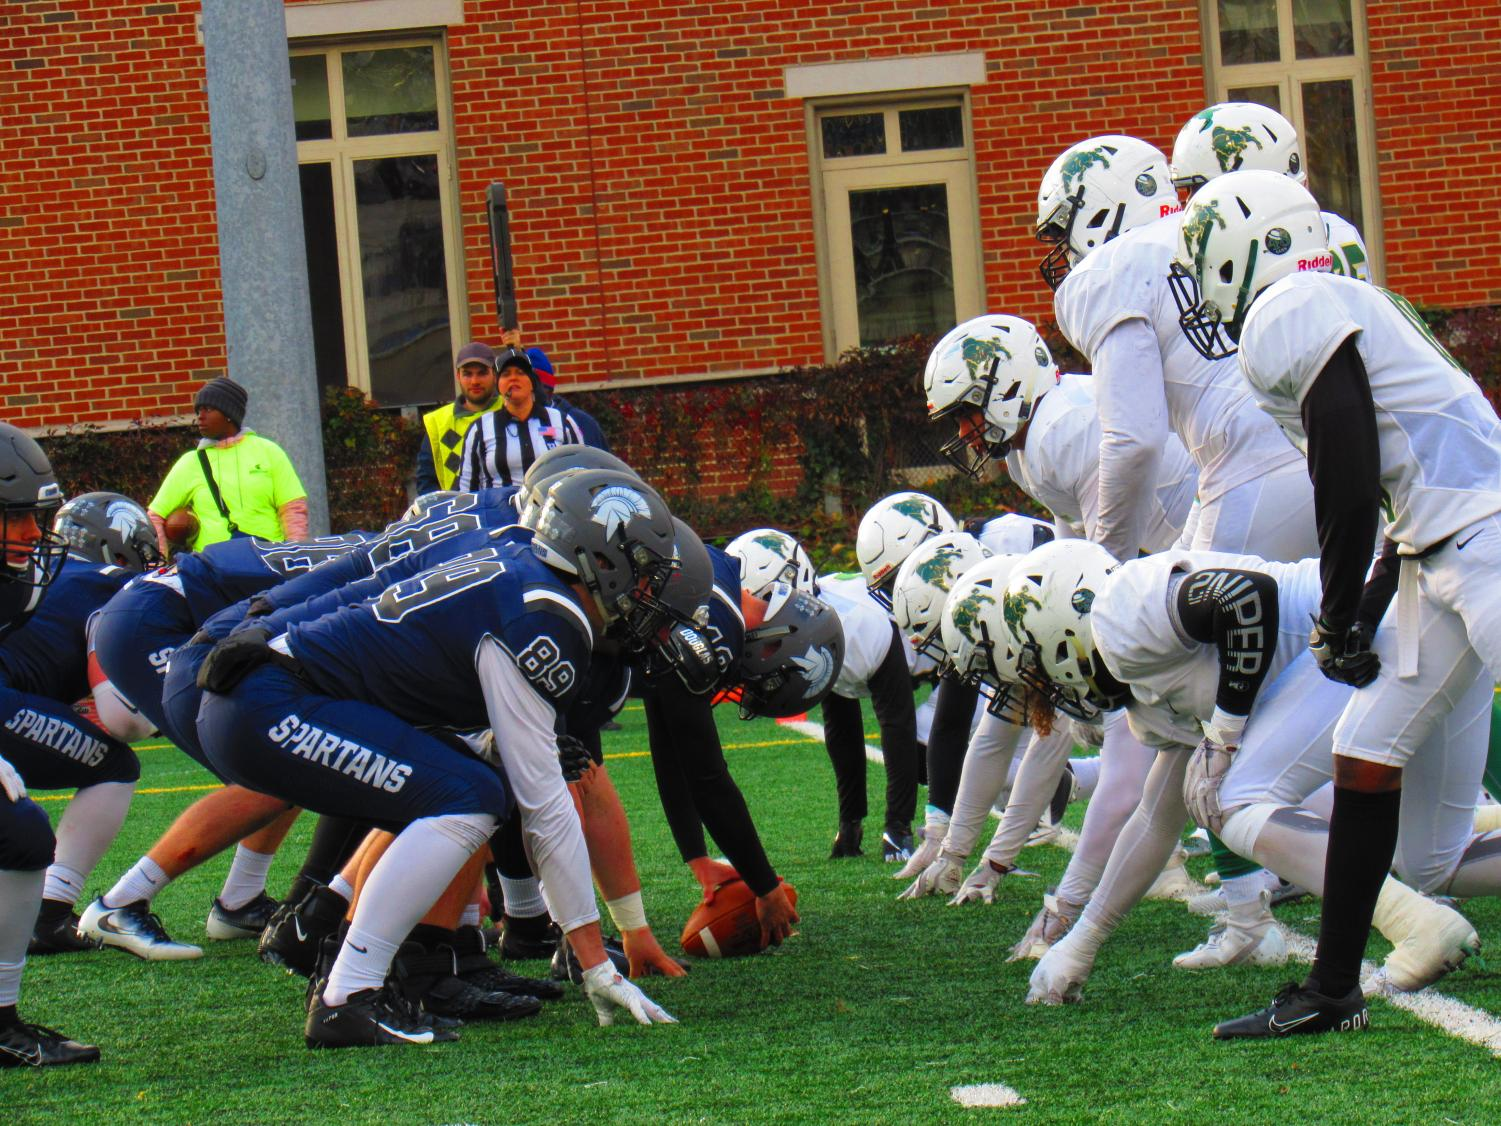 The Spartans football take their positions